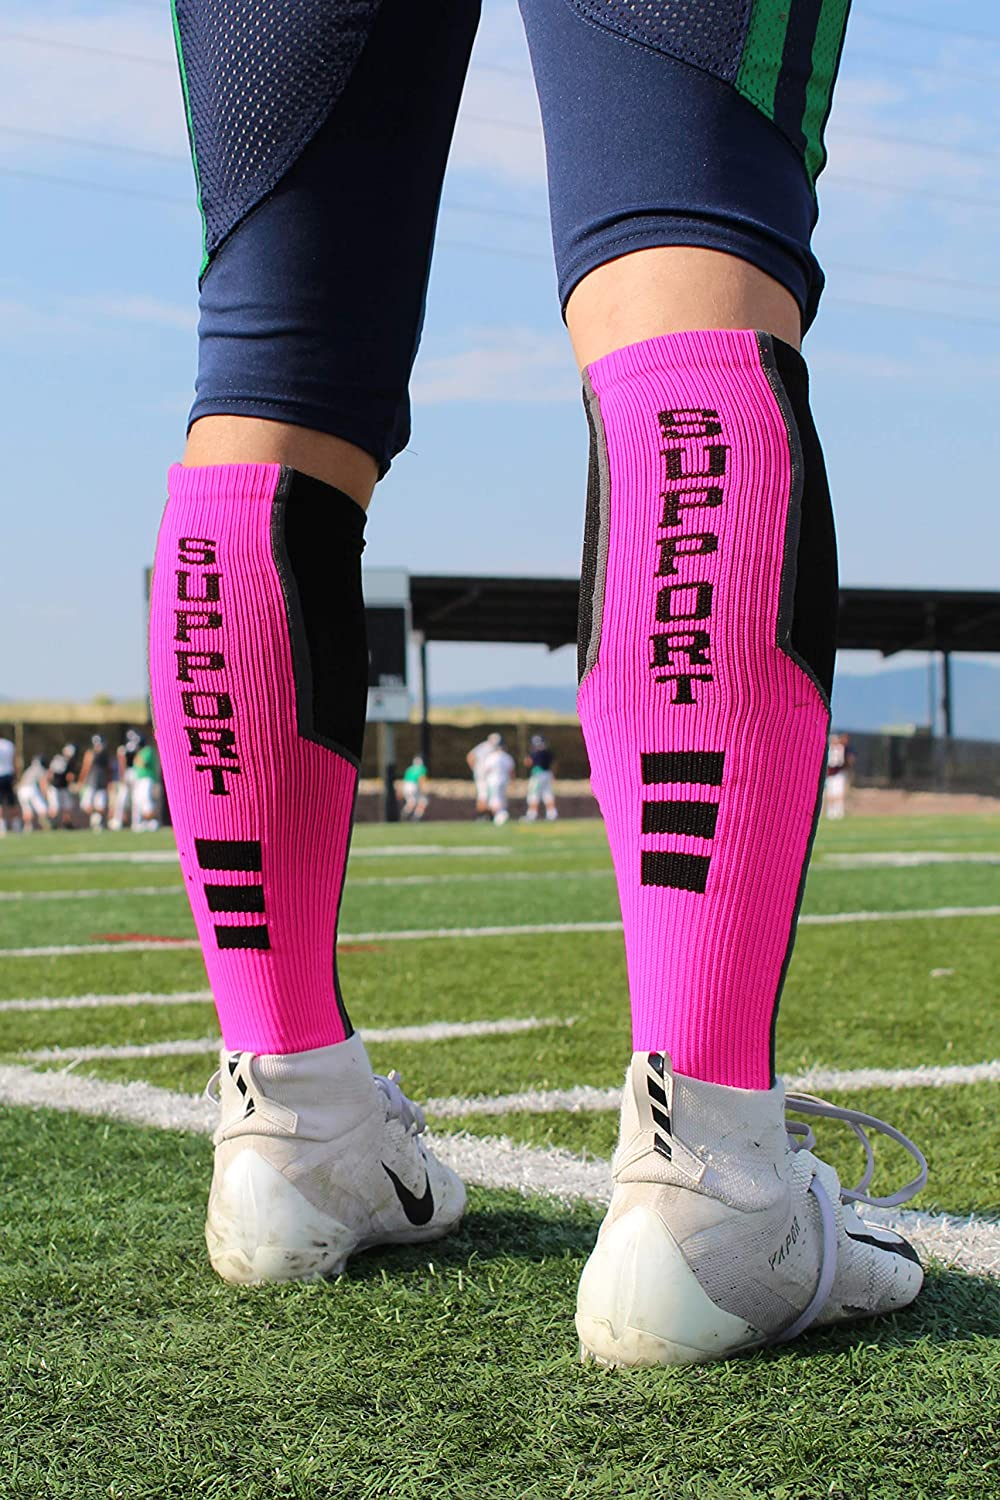 Pink Ribbon Breast Cancer Awareness Support Athletic Over the Calf Socks